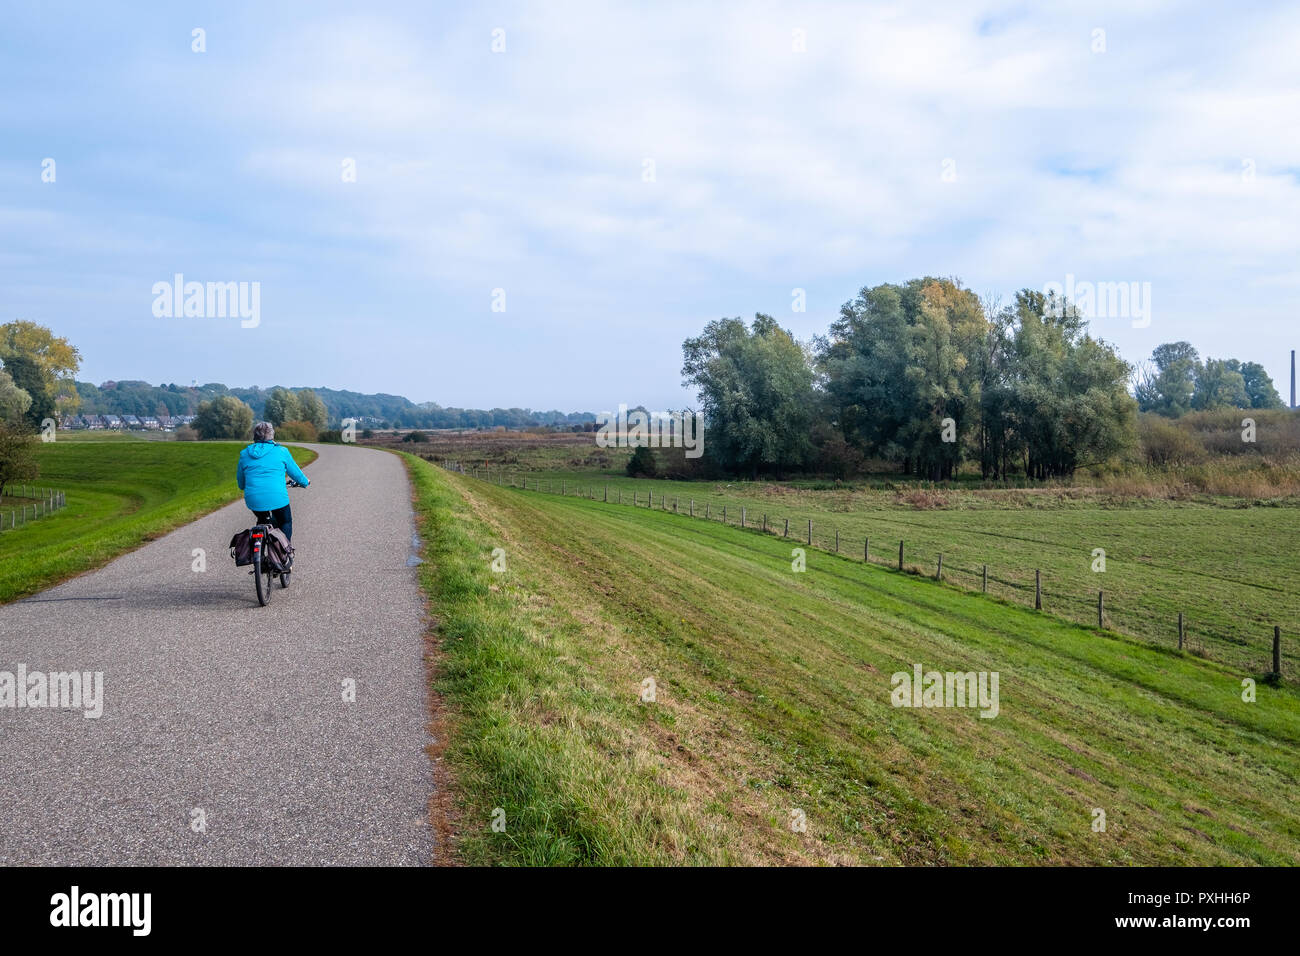 Woman on a bicycle on the dike along the flood plains along the river Nederrijn in Wageningen, the Netherlands. Stock Photo